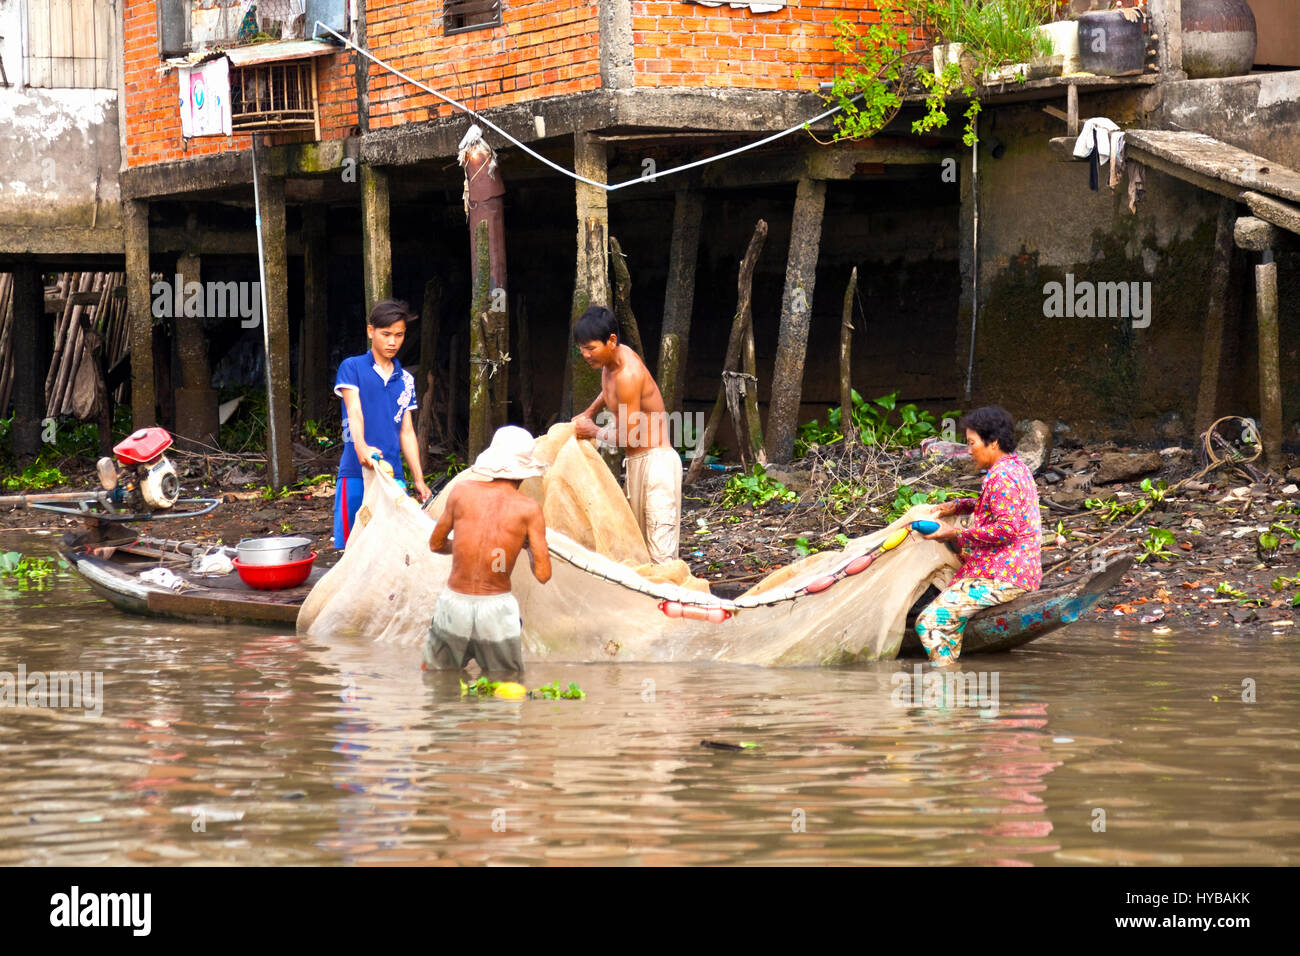 Hauling in the fish catch is a family business - Stock Image